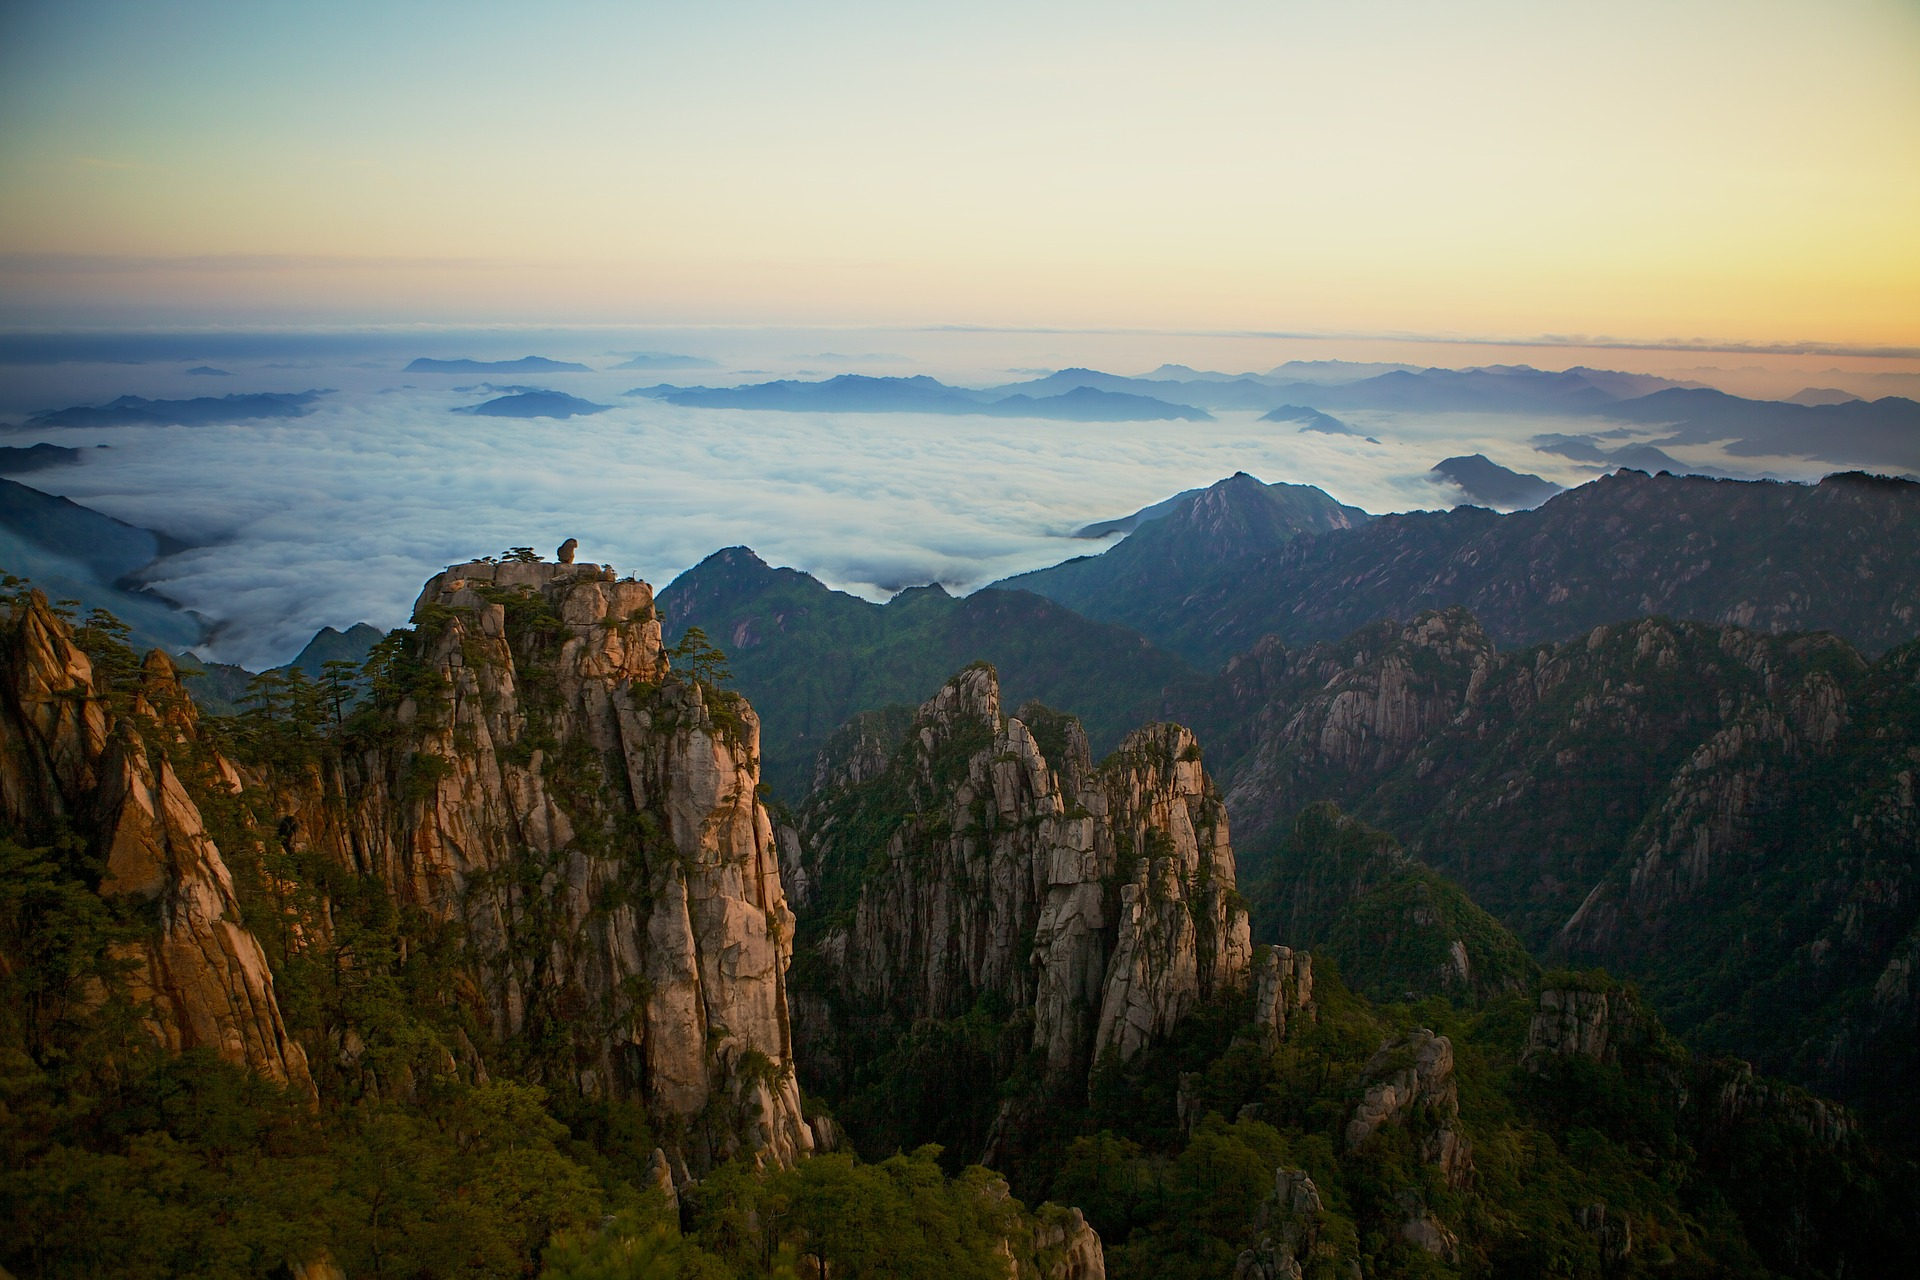 The Yellow Mountains have a worthy place on the top 10